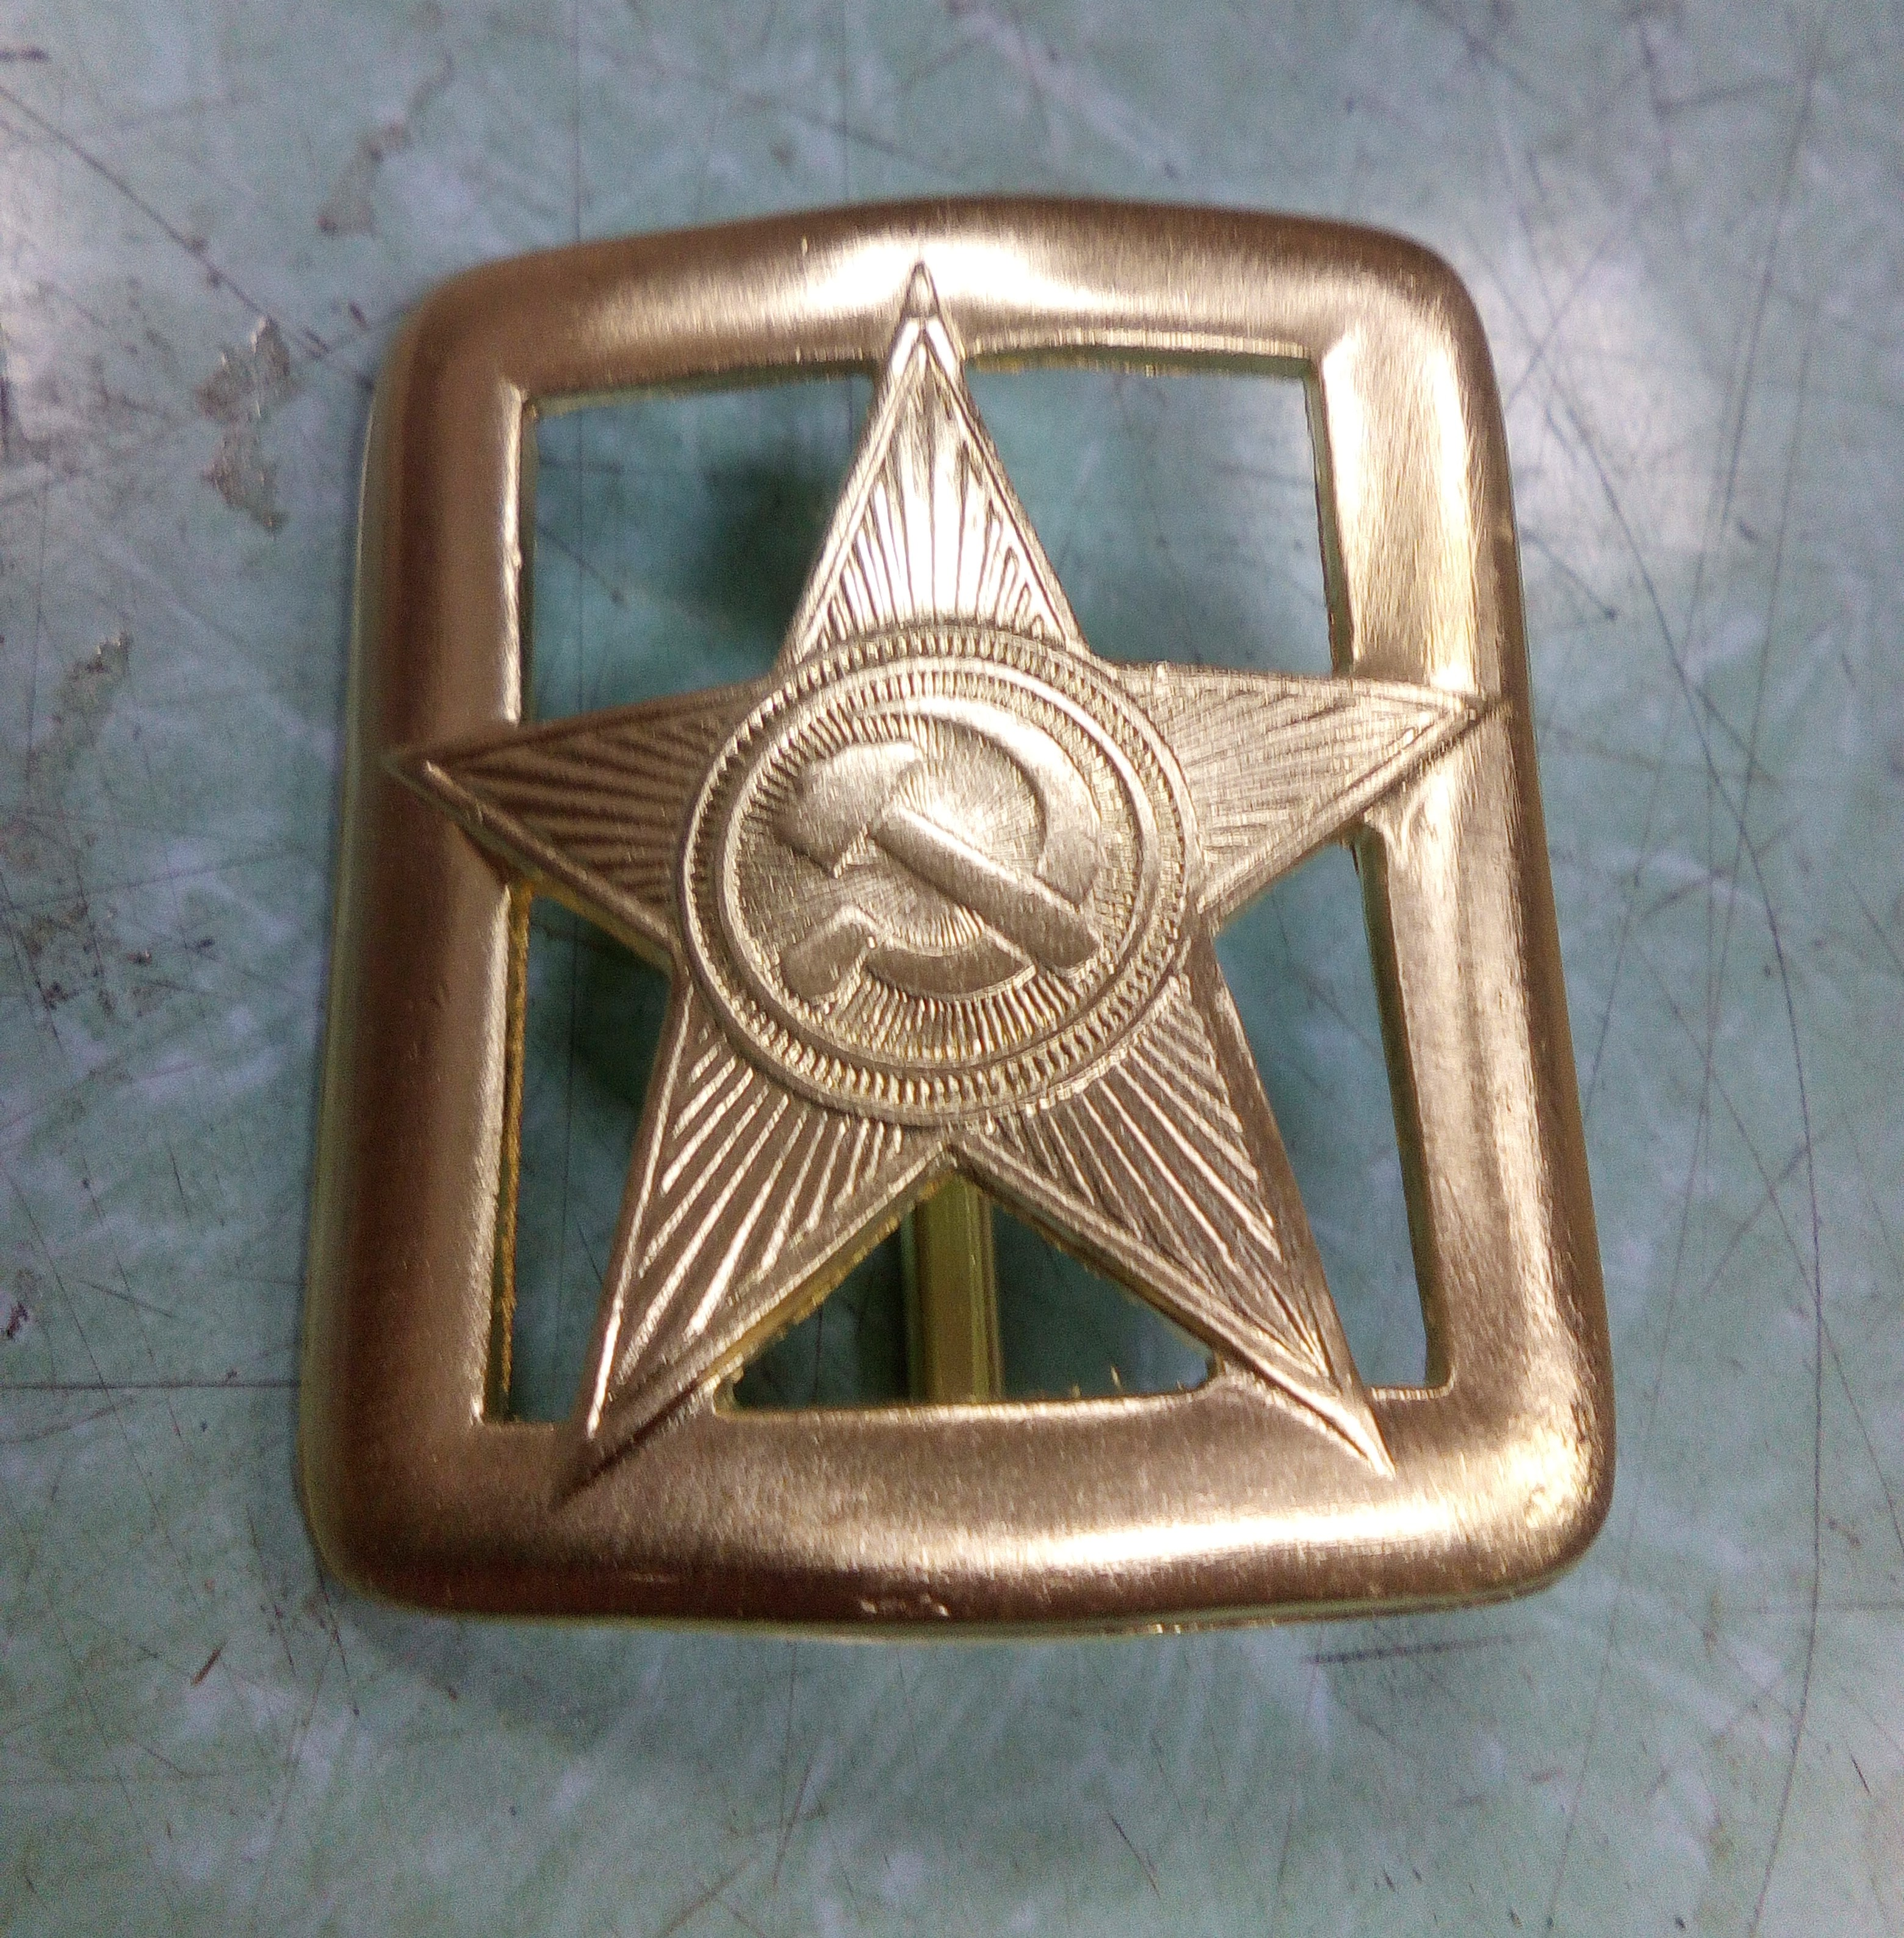 Buckle Brass With Star From генеральского Belt (gear комначсостава 1935 Year)/The Buckle Is Brass With A Star